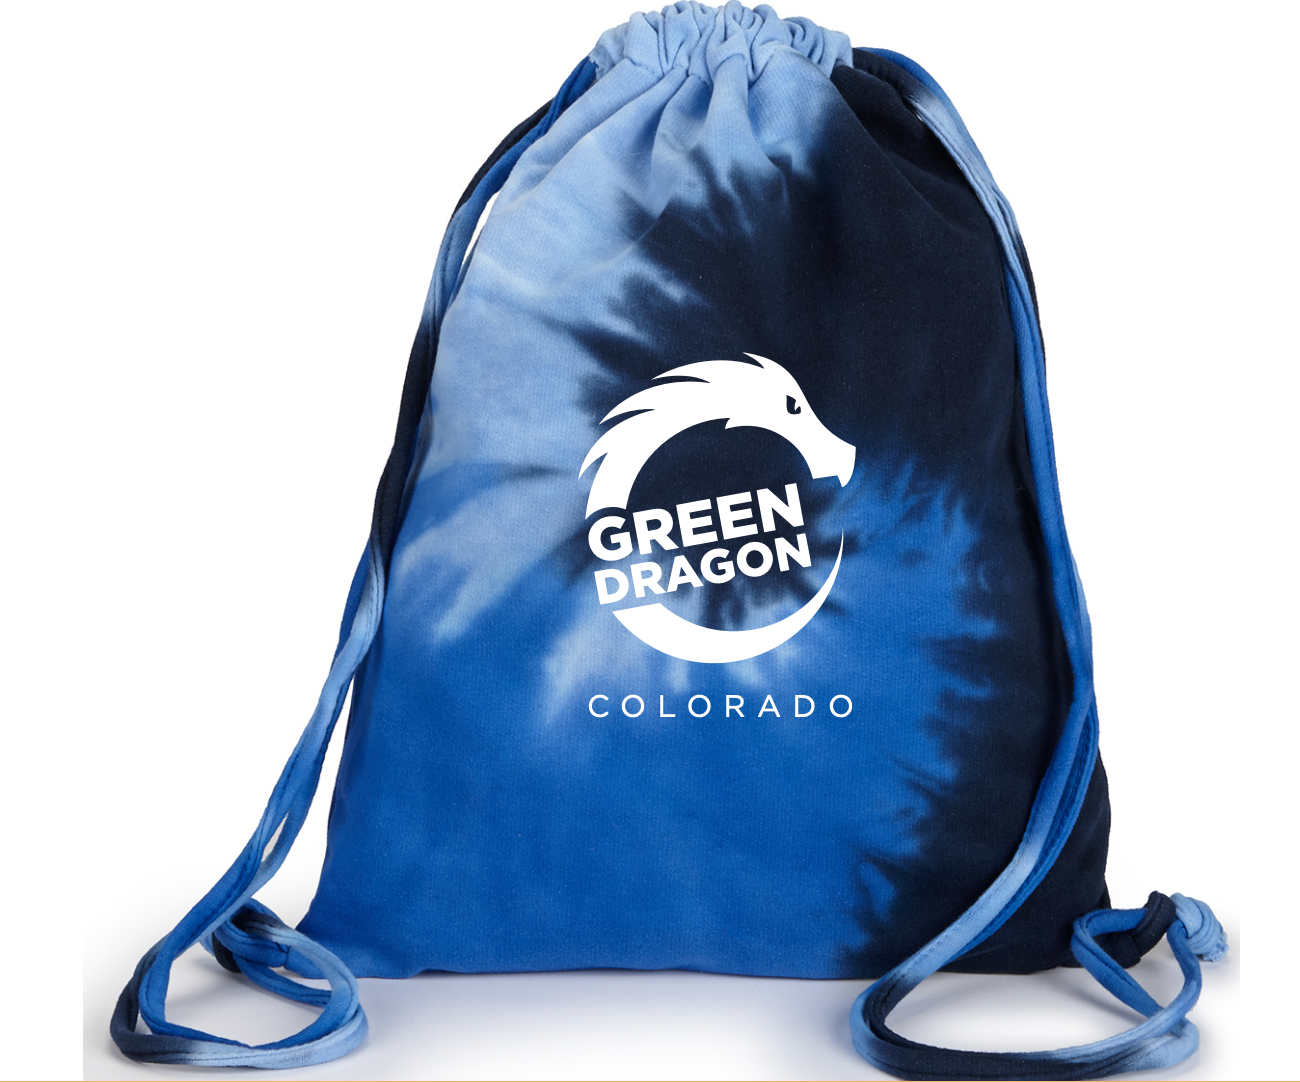 Blue Swirl Tie-Dye Draw String Bag